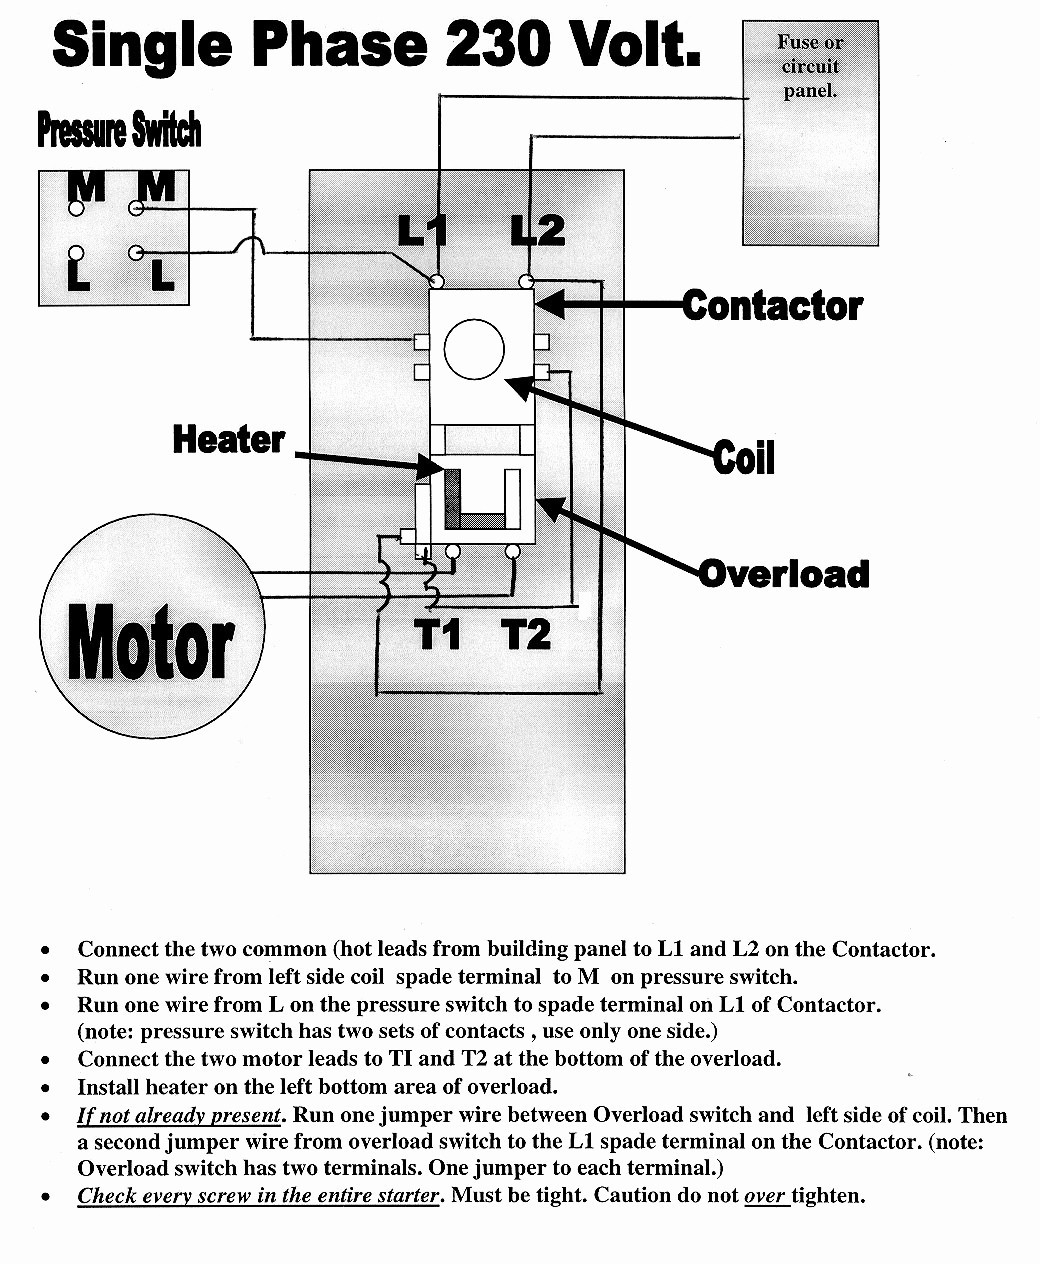 square d manual motor starter wiring diagram Collection-square d manual motor starter wiring diagram trusted wiring diagrams u2022 rh 66 42 81 37 14-h